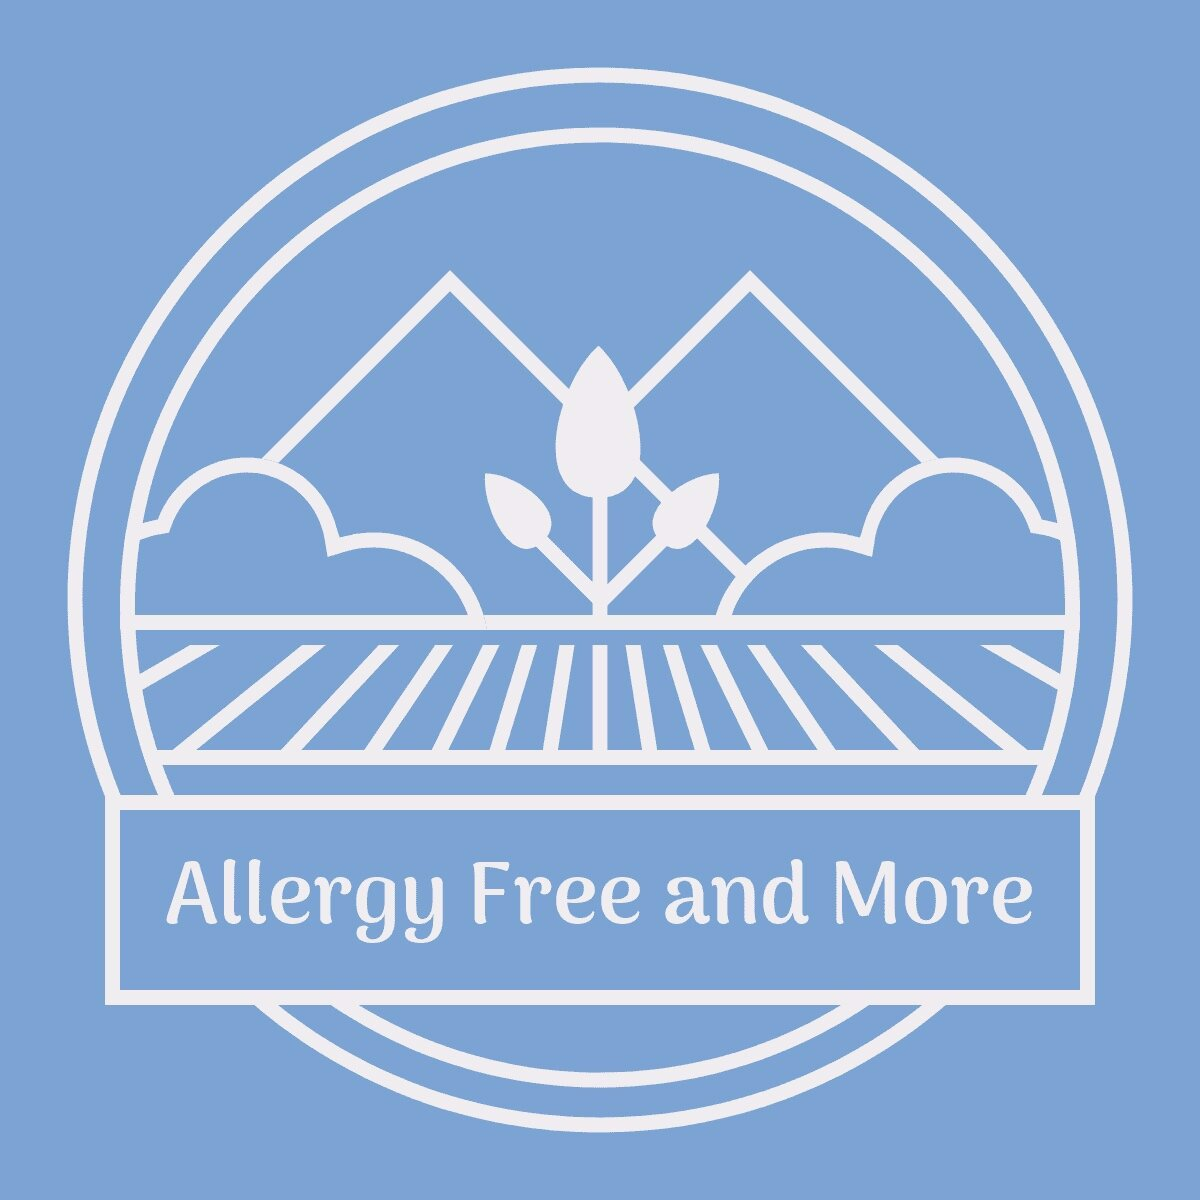 Allergy Free and More